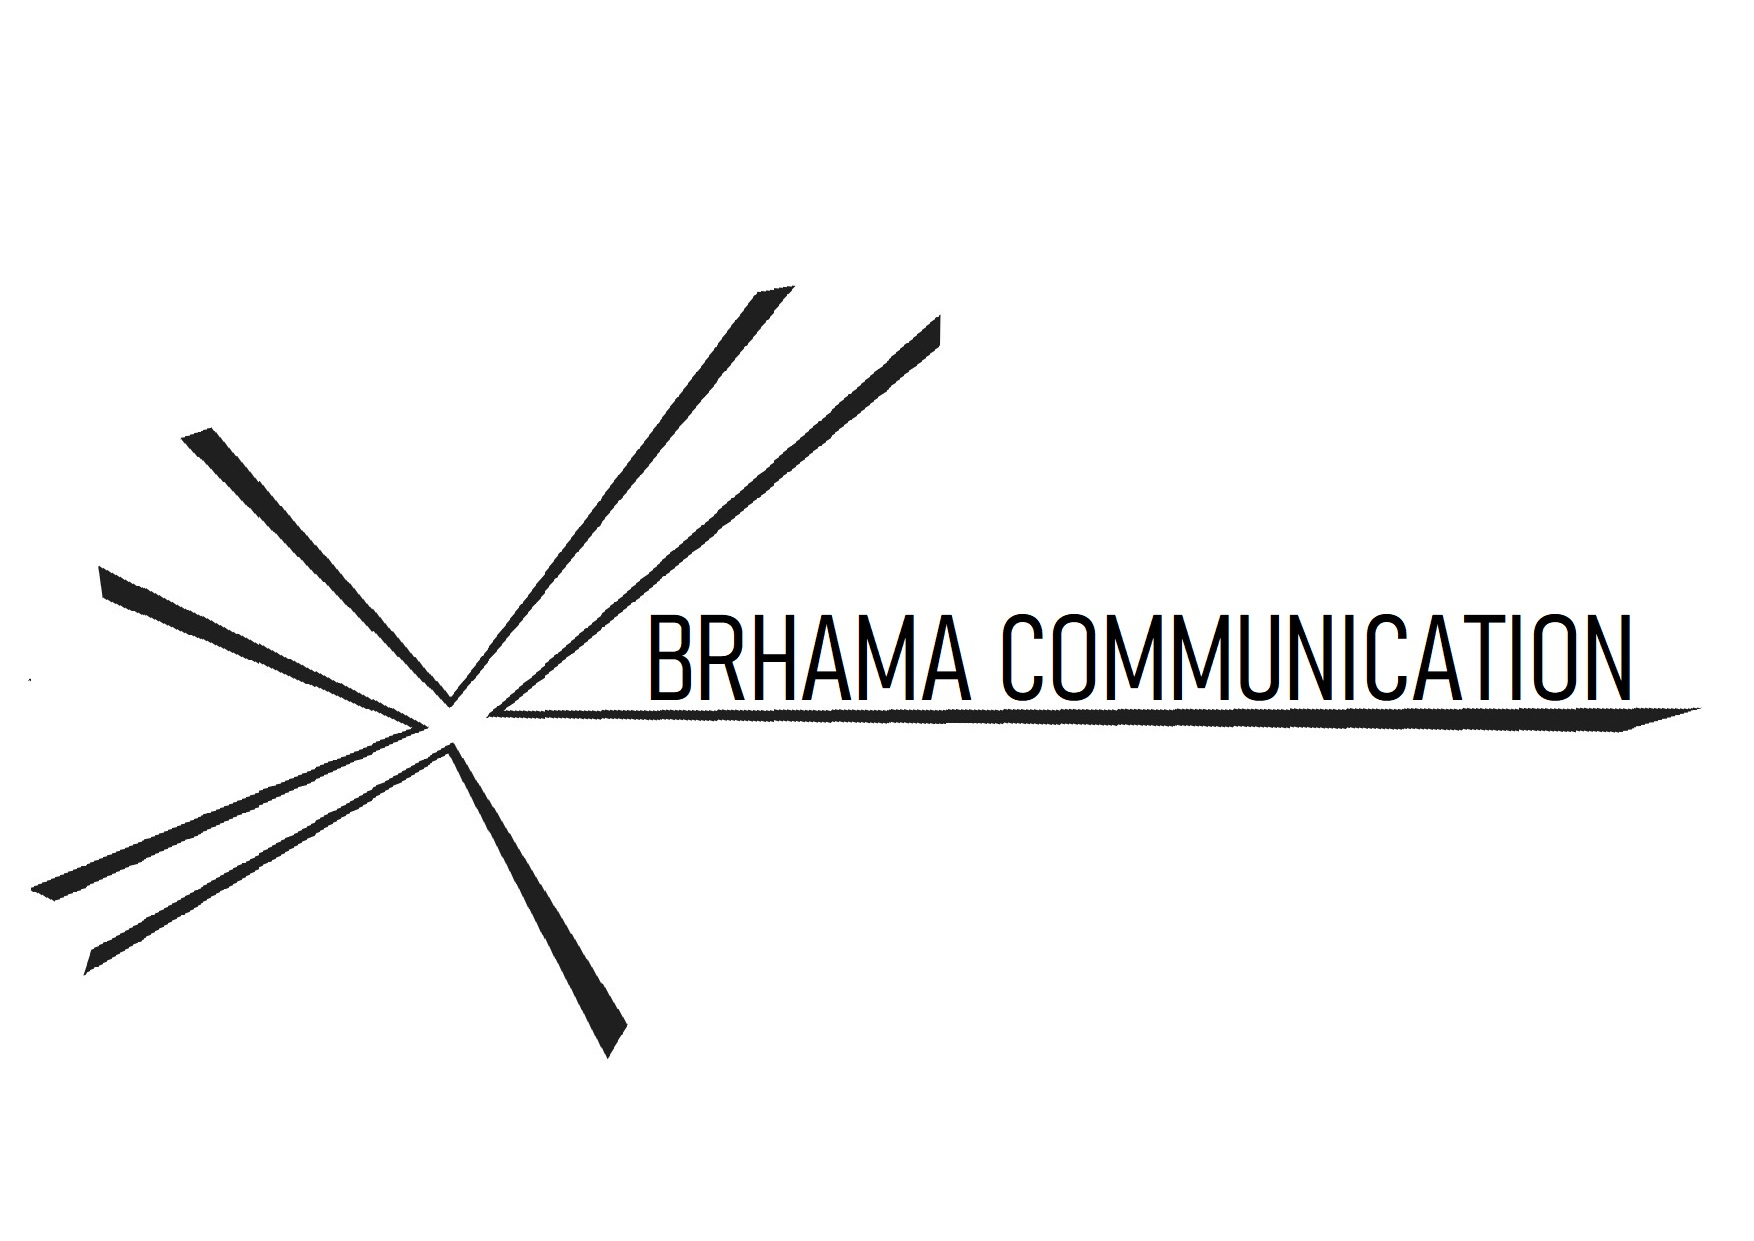 Brahma Communication